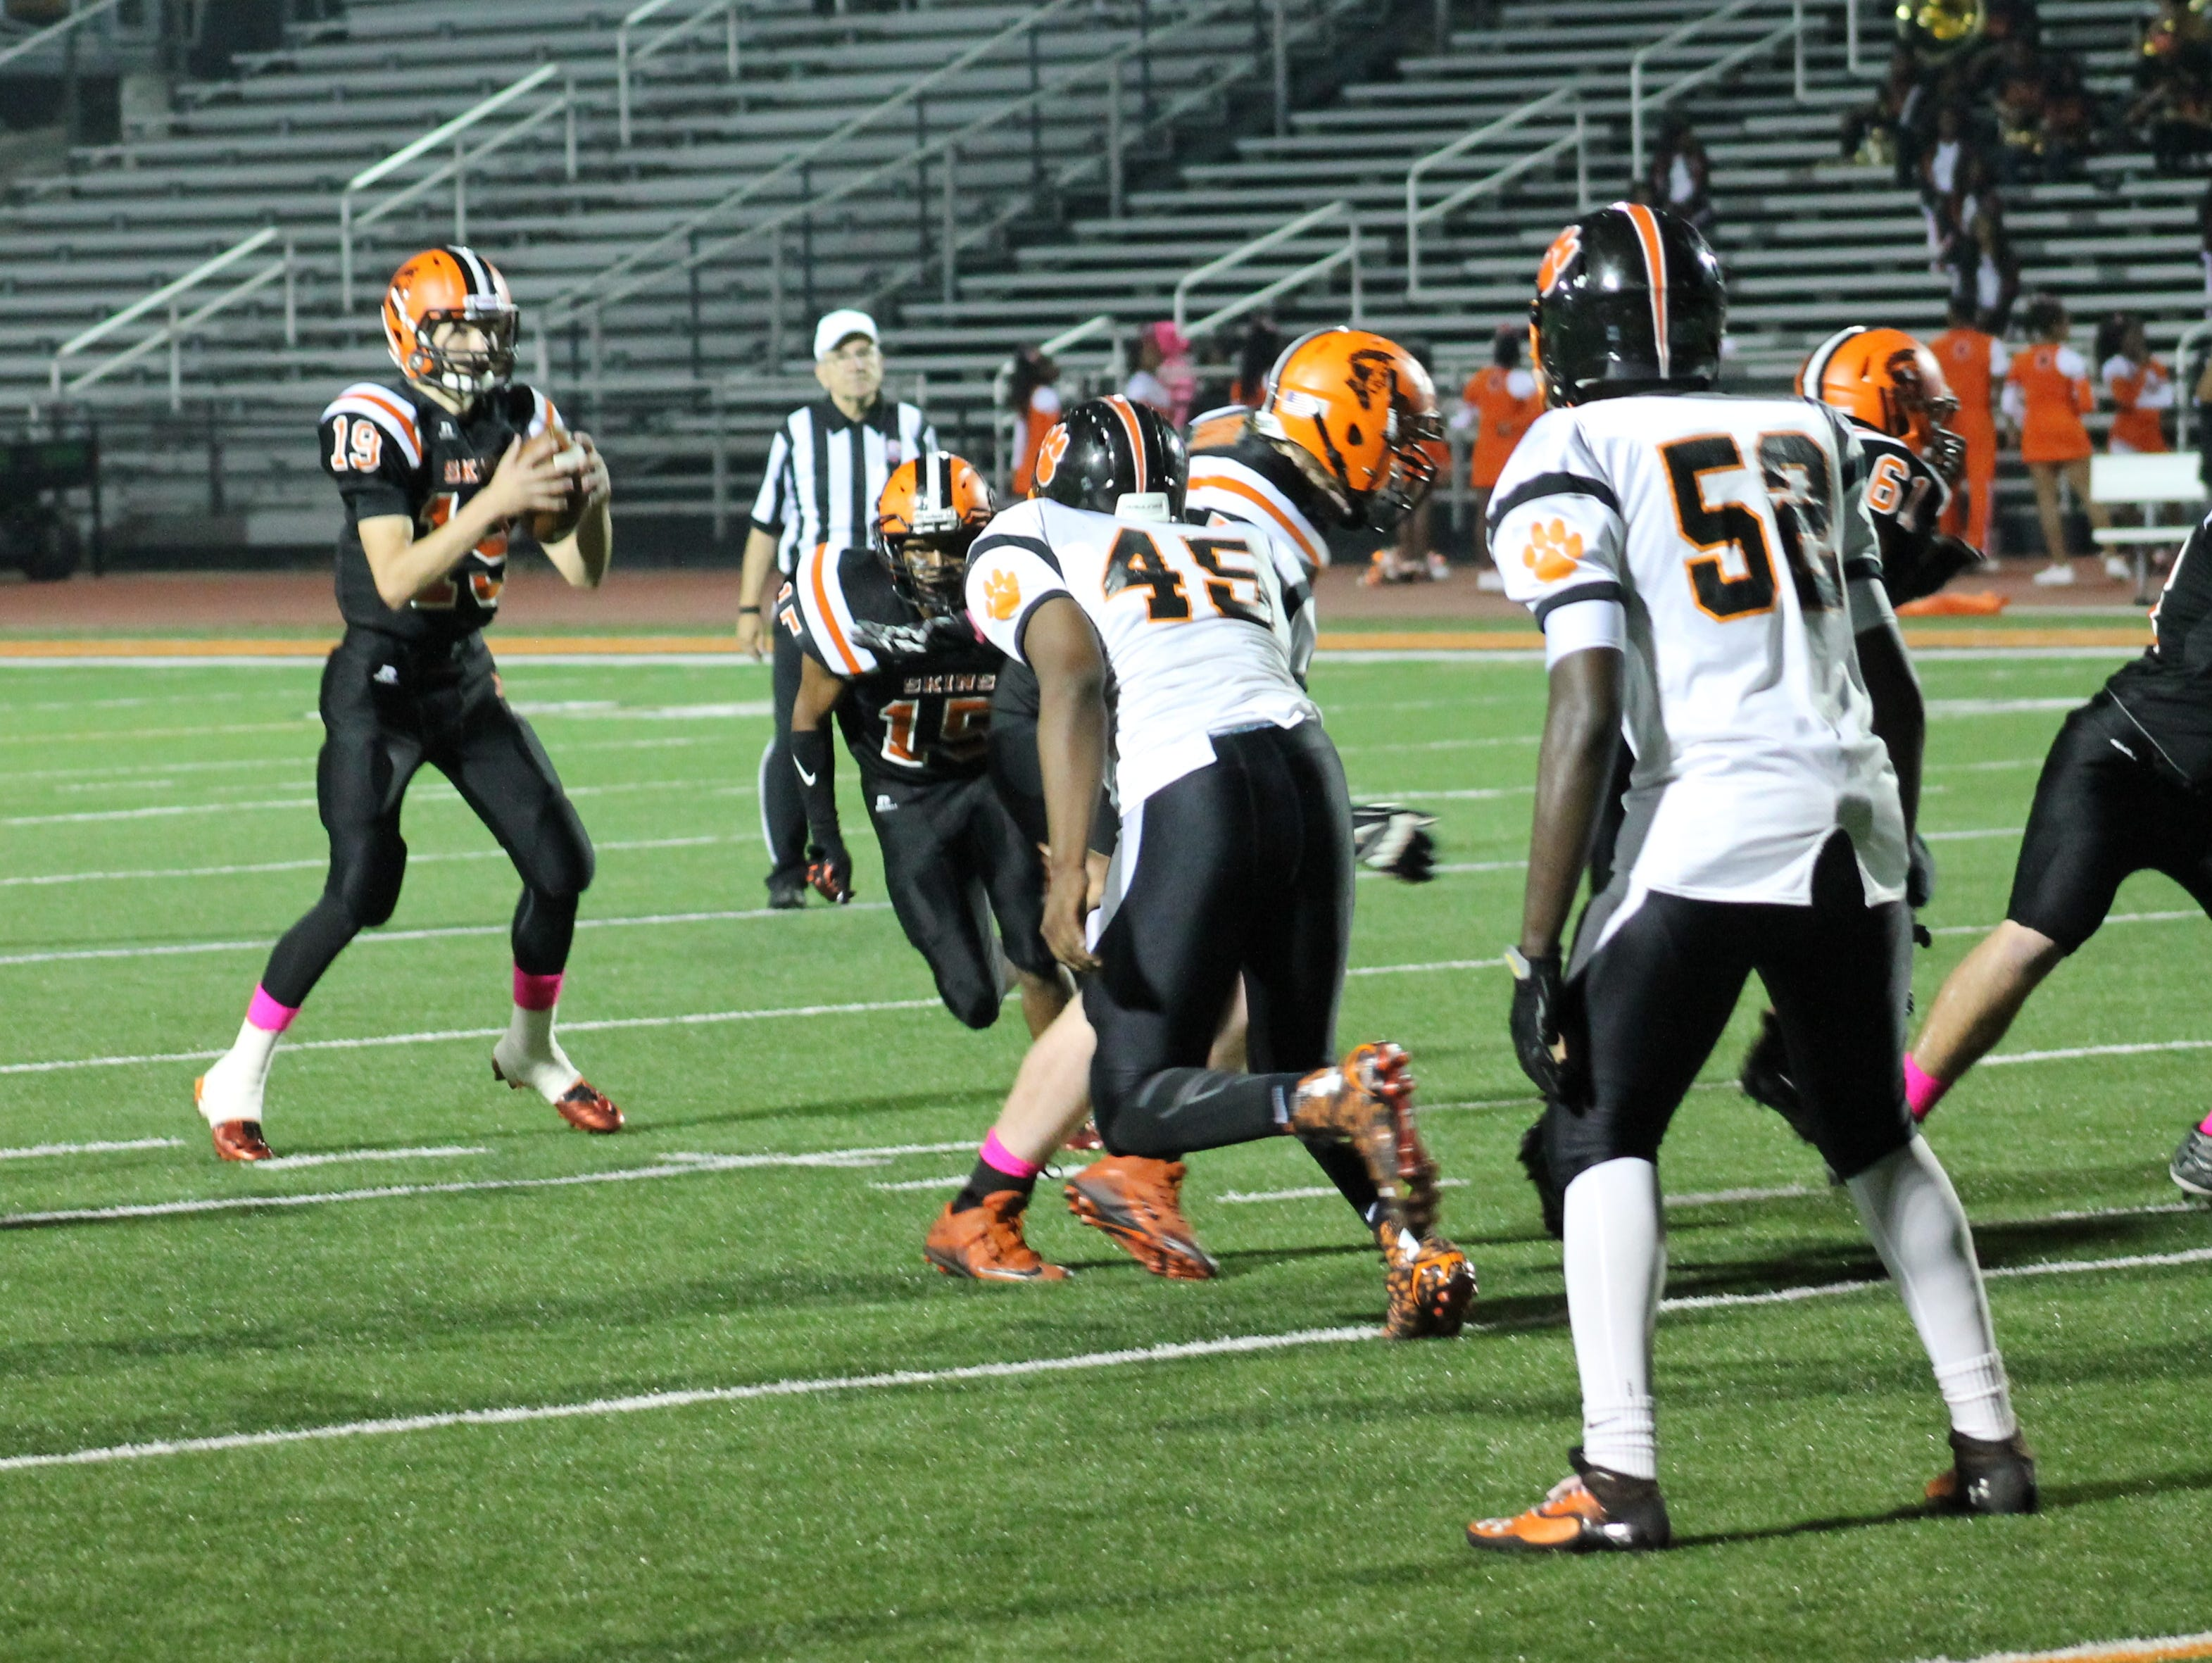 Anderson sophomore quarterback Jay Volpenhein (19) takes the shotgun snap before running for a Redskins score against Withrow.